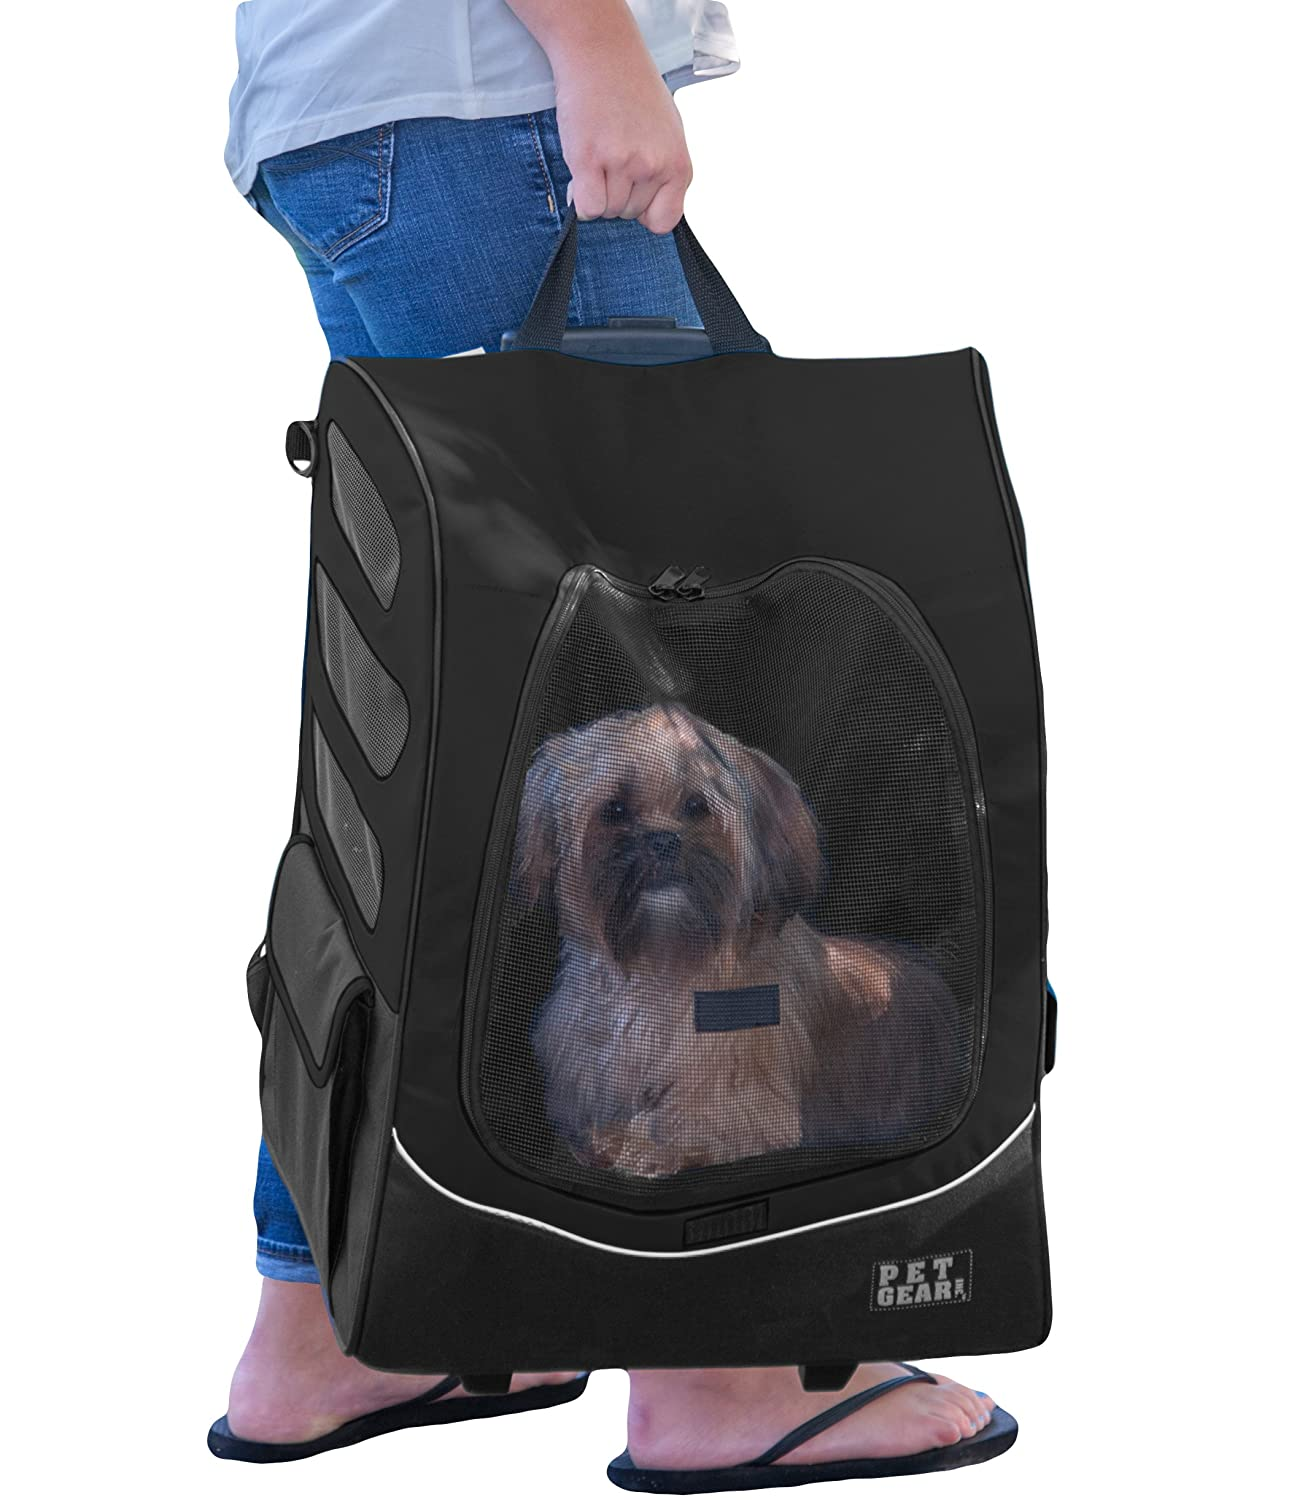 Pet Gear I-GO2 Roller Backpack Car Seat for Cats//Dogs Travel Carrier Storage Pouch Included Tether Mesh Ventilation Telescoping Handle